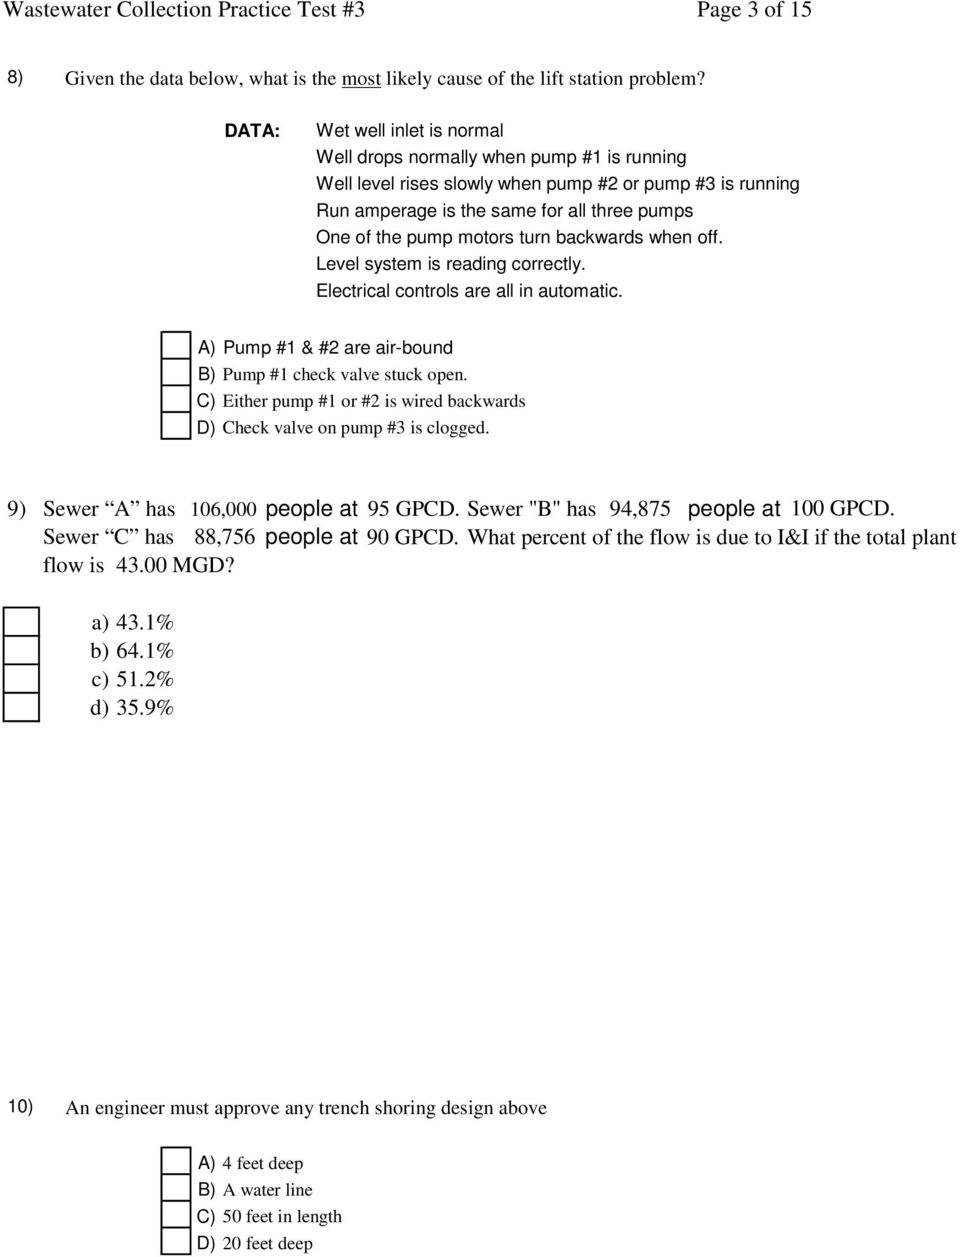 Wastewater Collection Practice Test #3 Page 1 of 15 - PDF